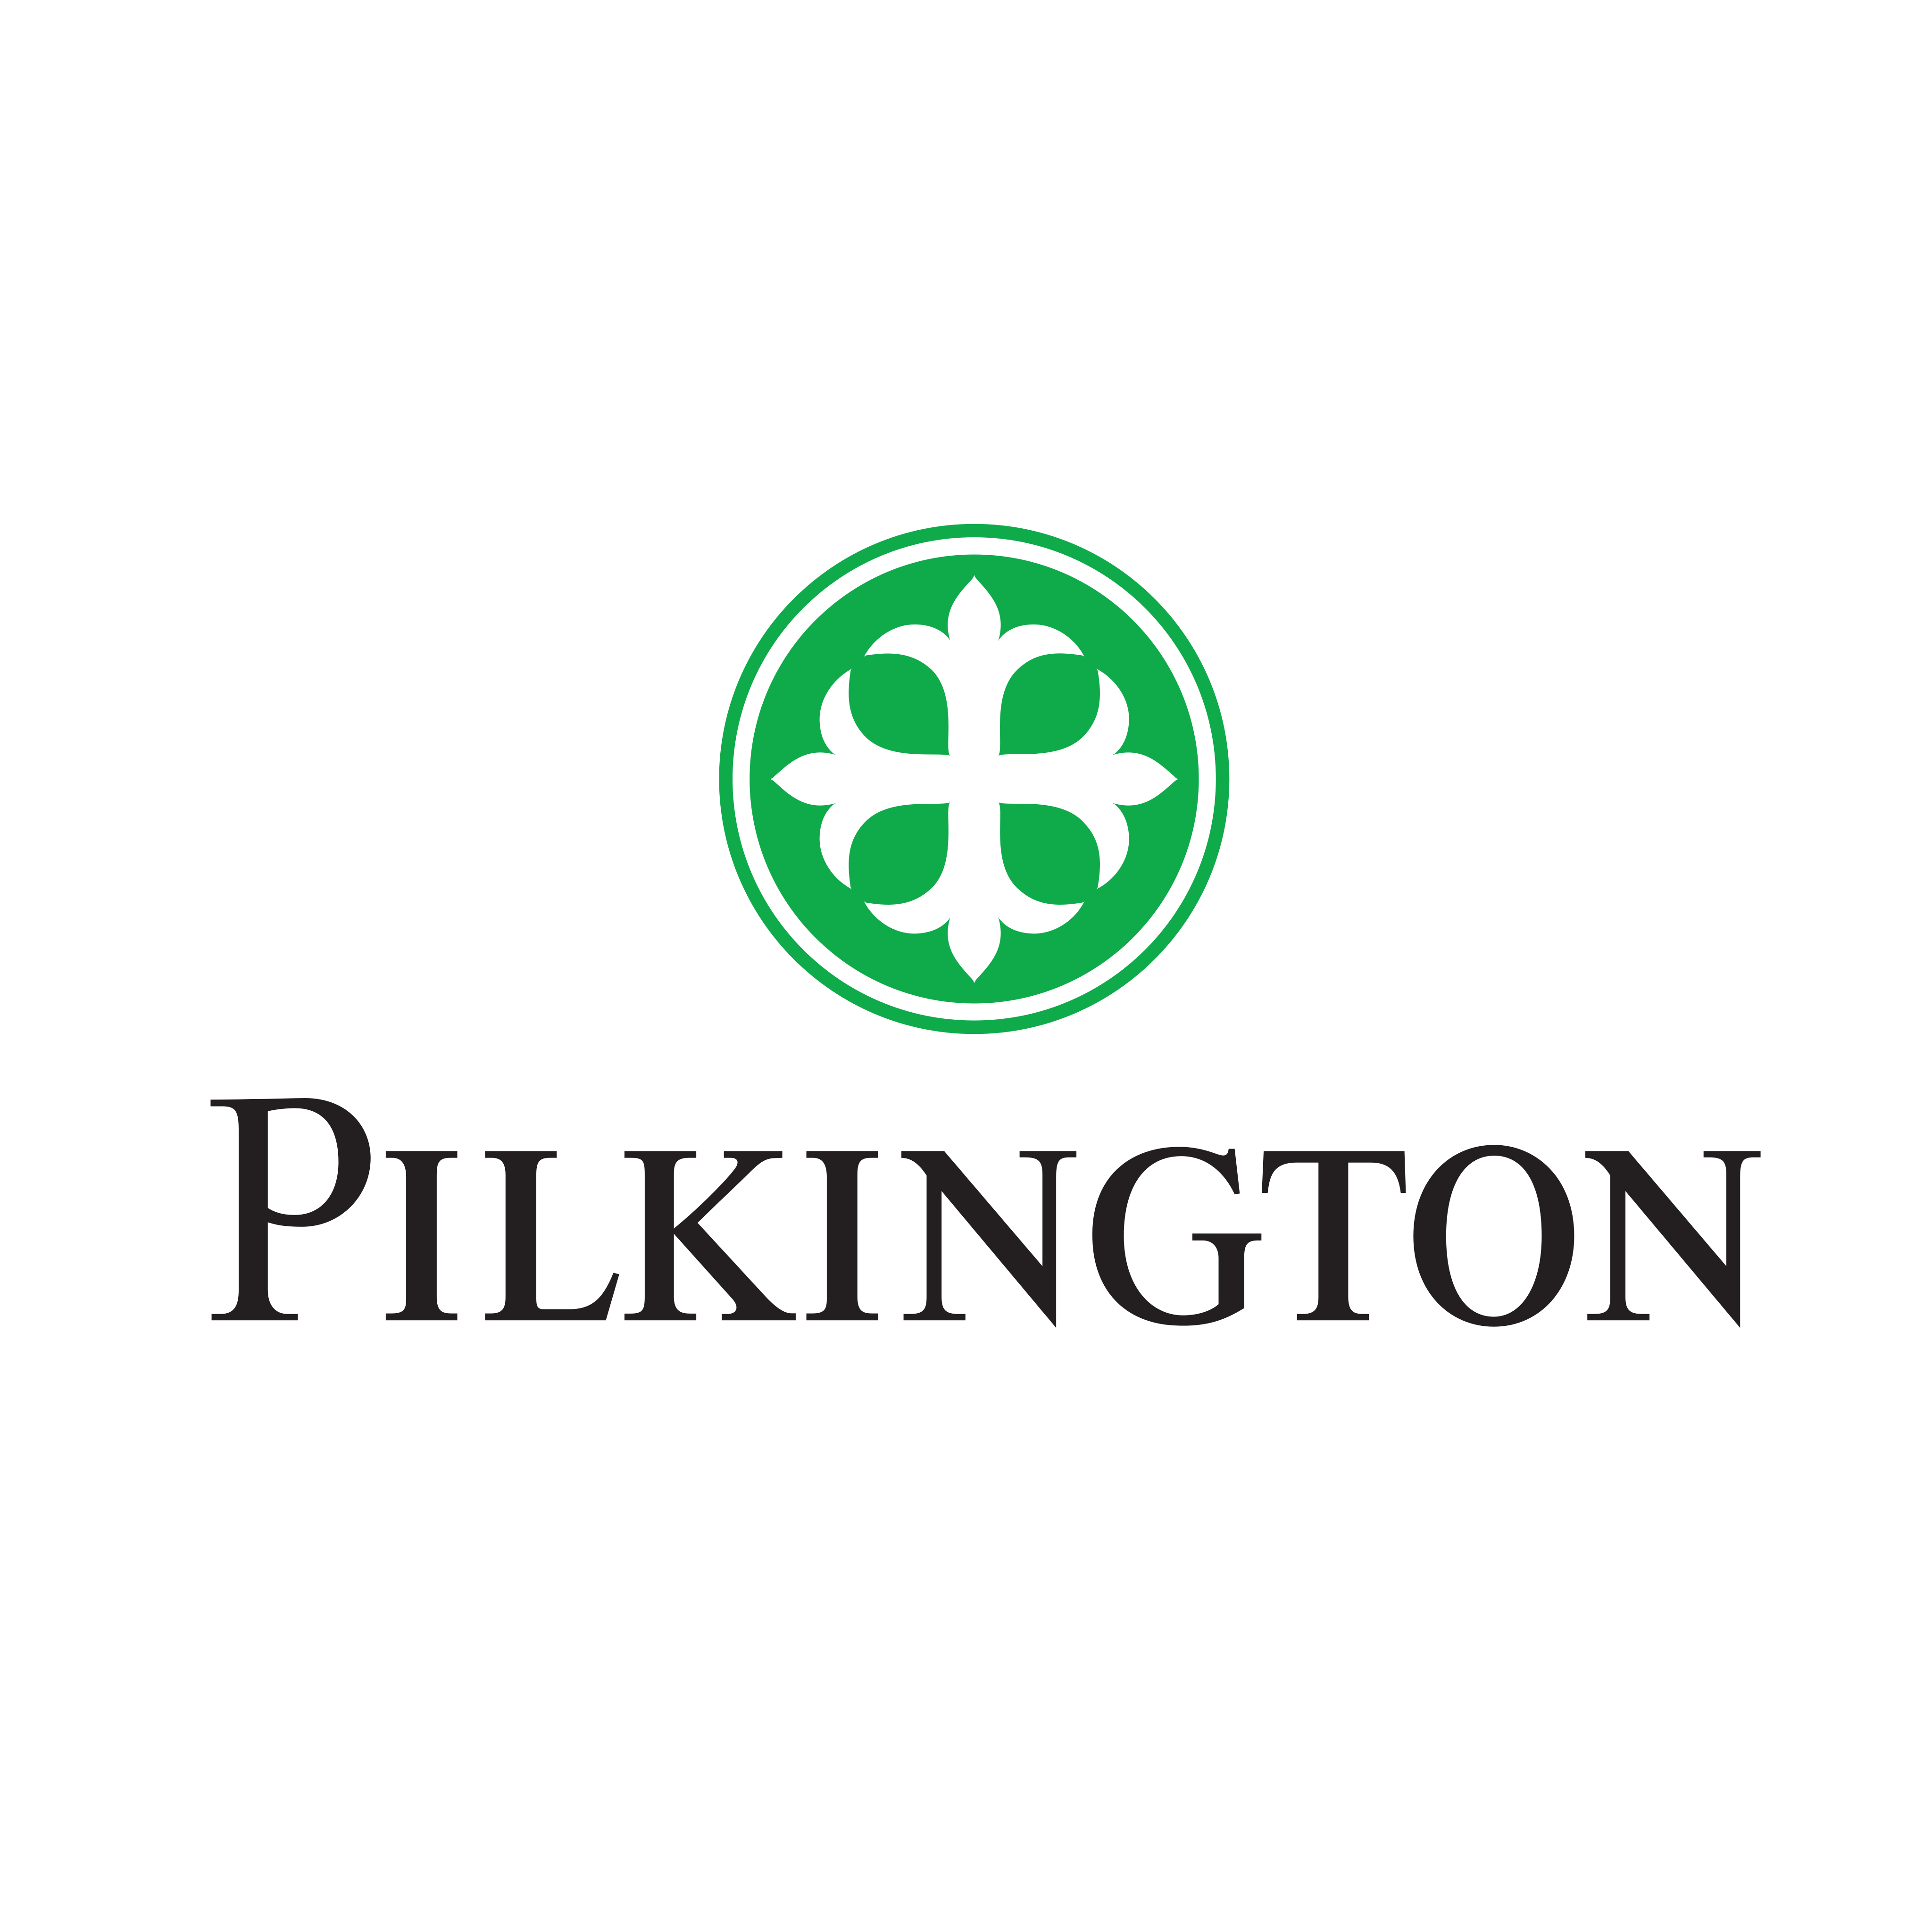 pilkington logo 0 - Pilkington Logo